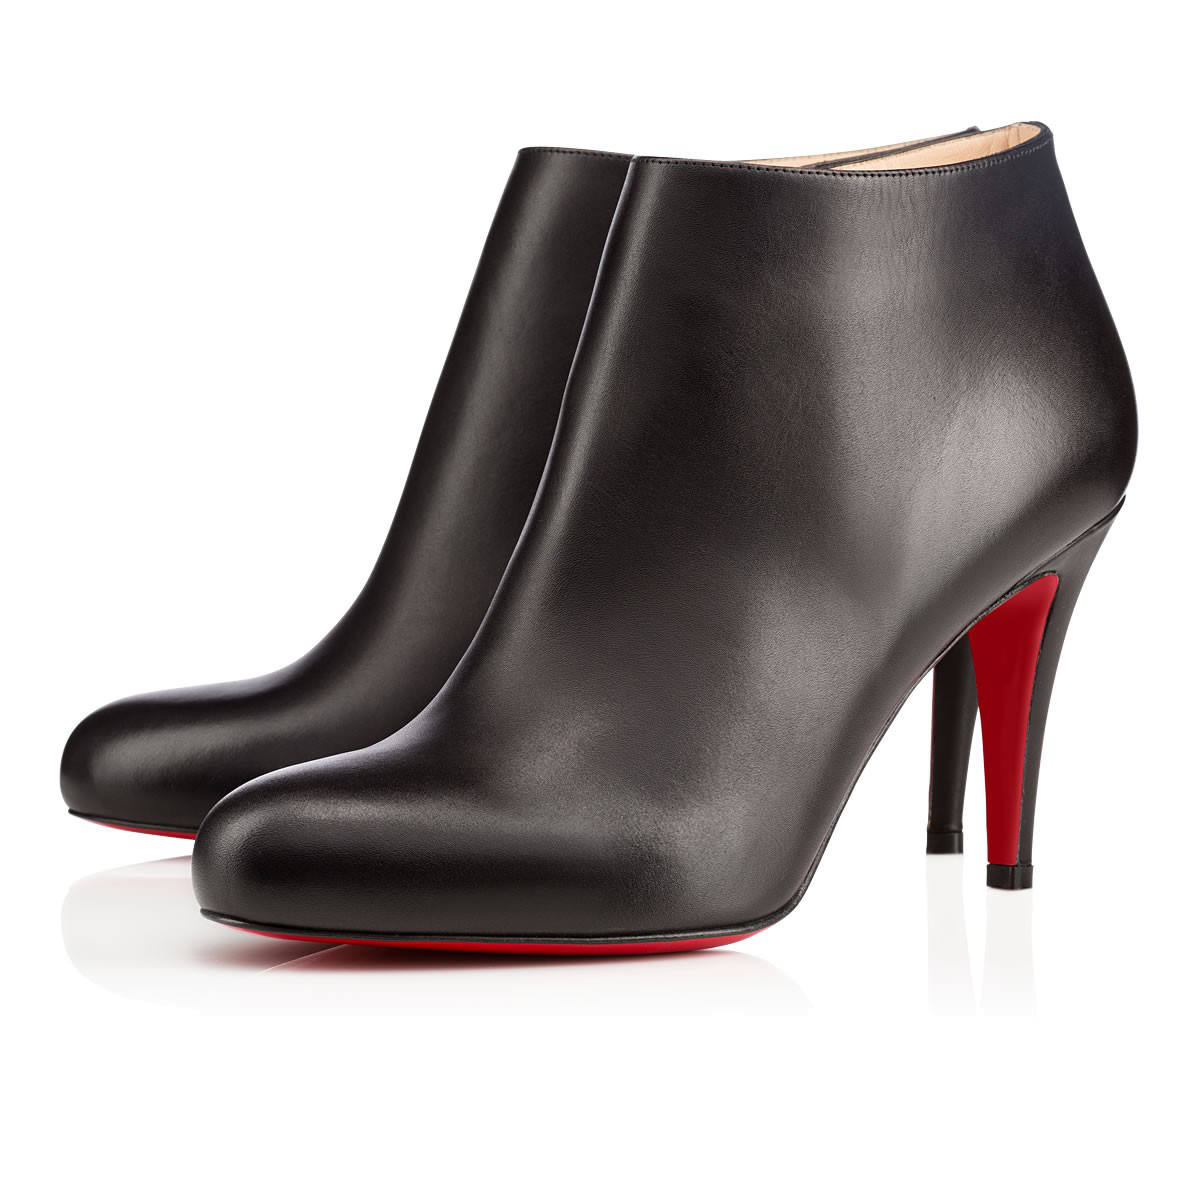 566584db7573 CHRISTIAN LOUBOUTIN. Belle Leather Red-Sole Ankle Boot